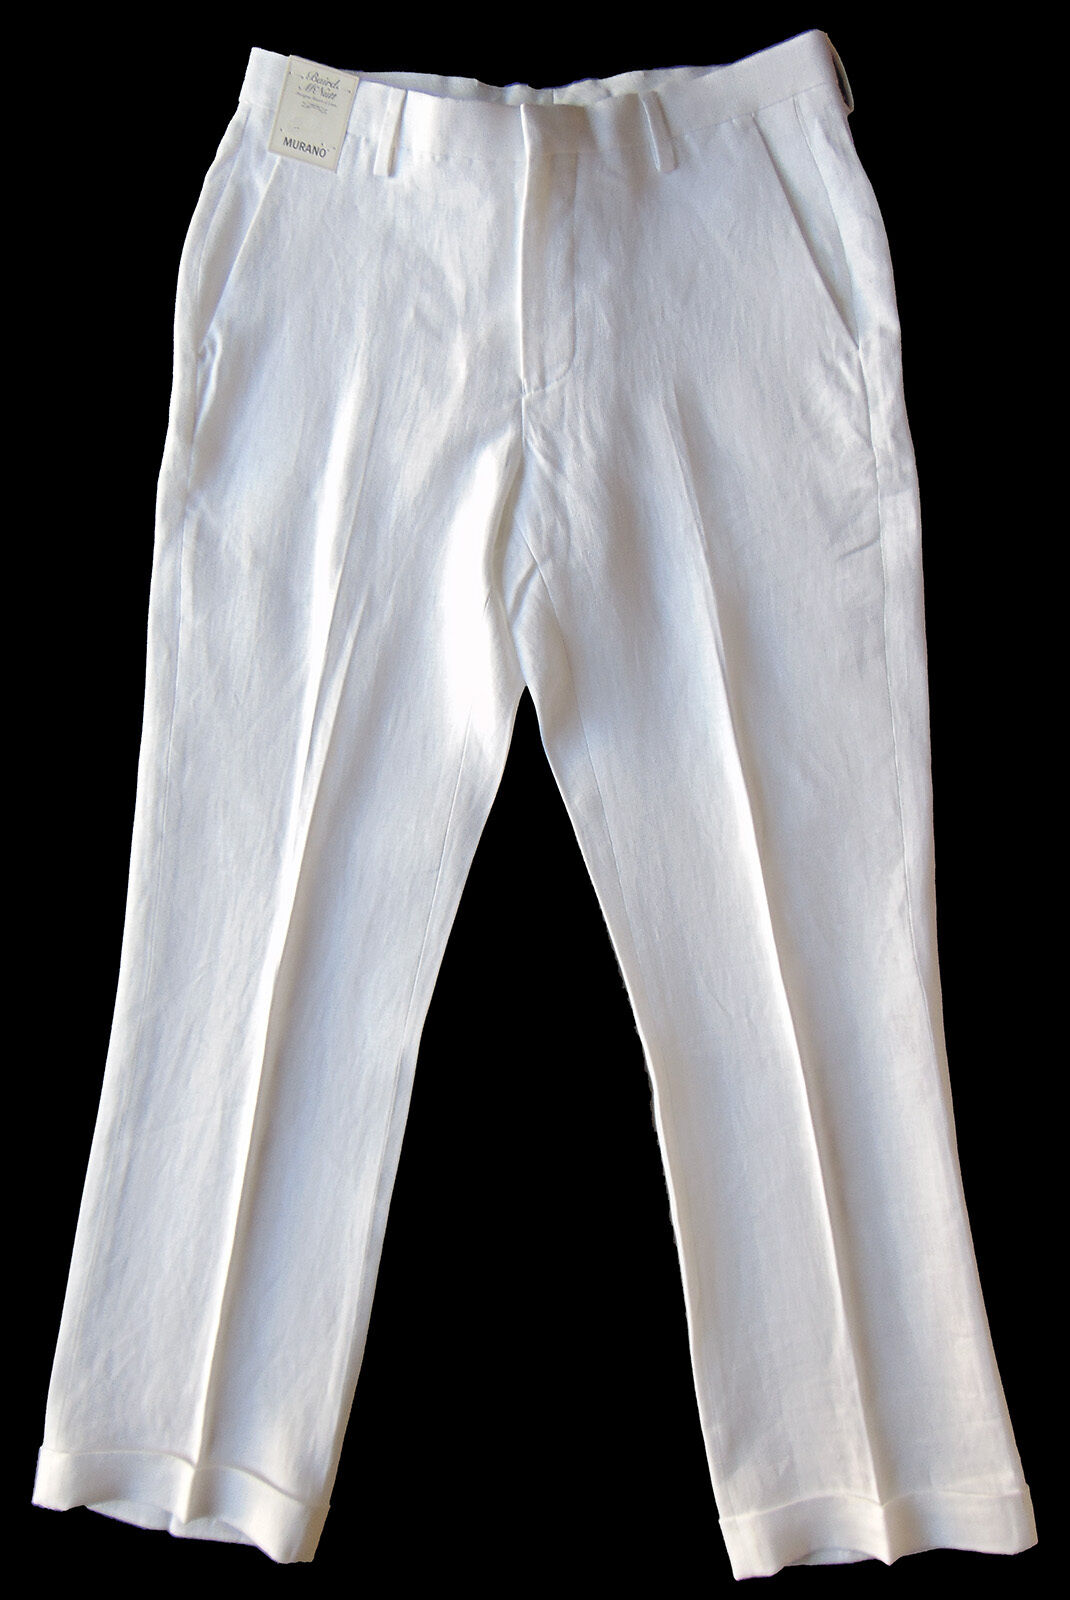 Men's MURANO White LINEN Dress Pants 33x32 NEW NWT S75PM720 Baird McNutt Nice